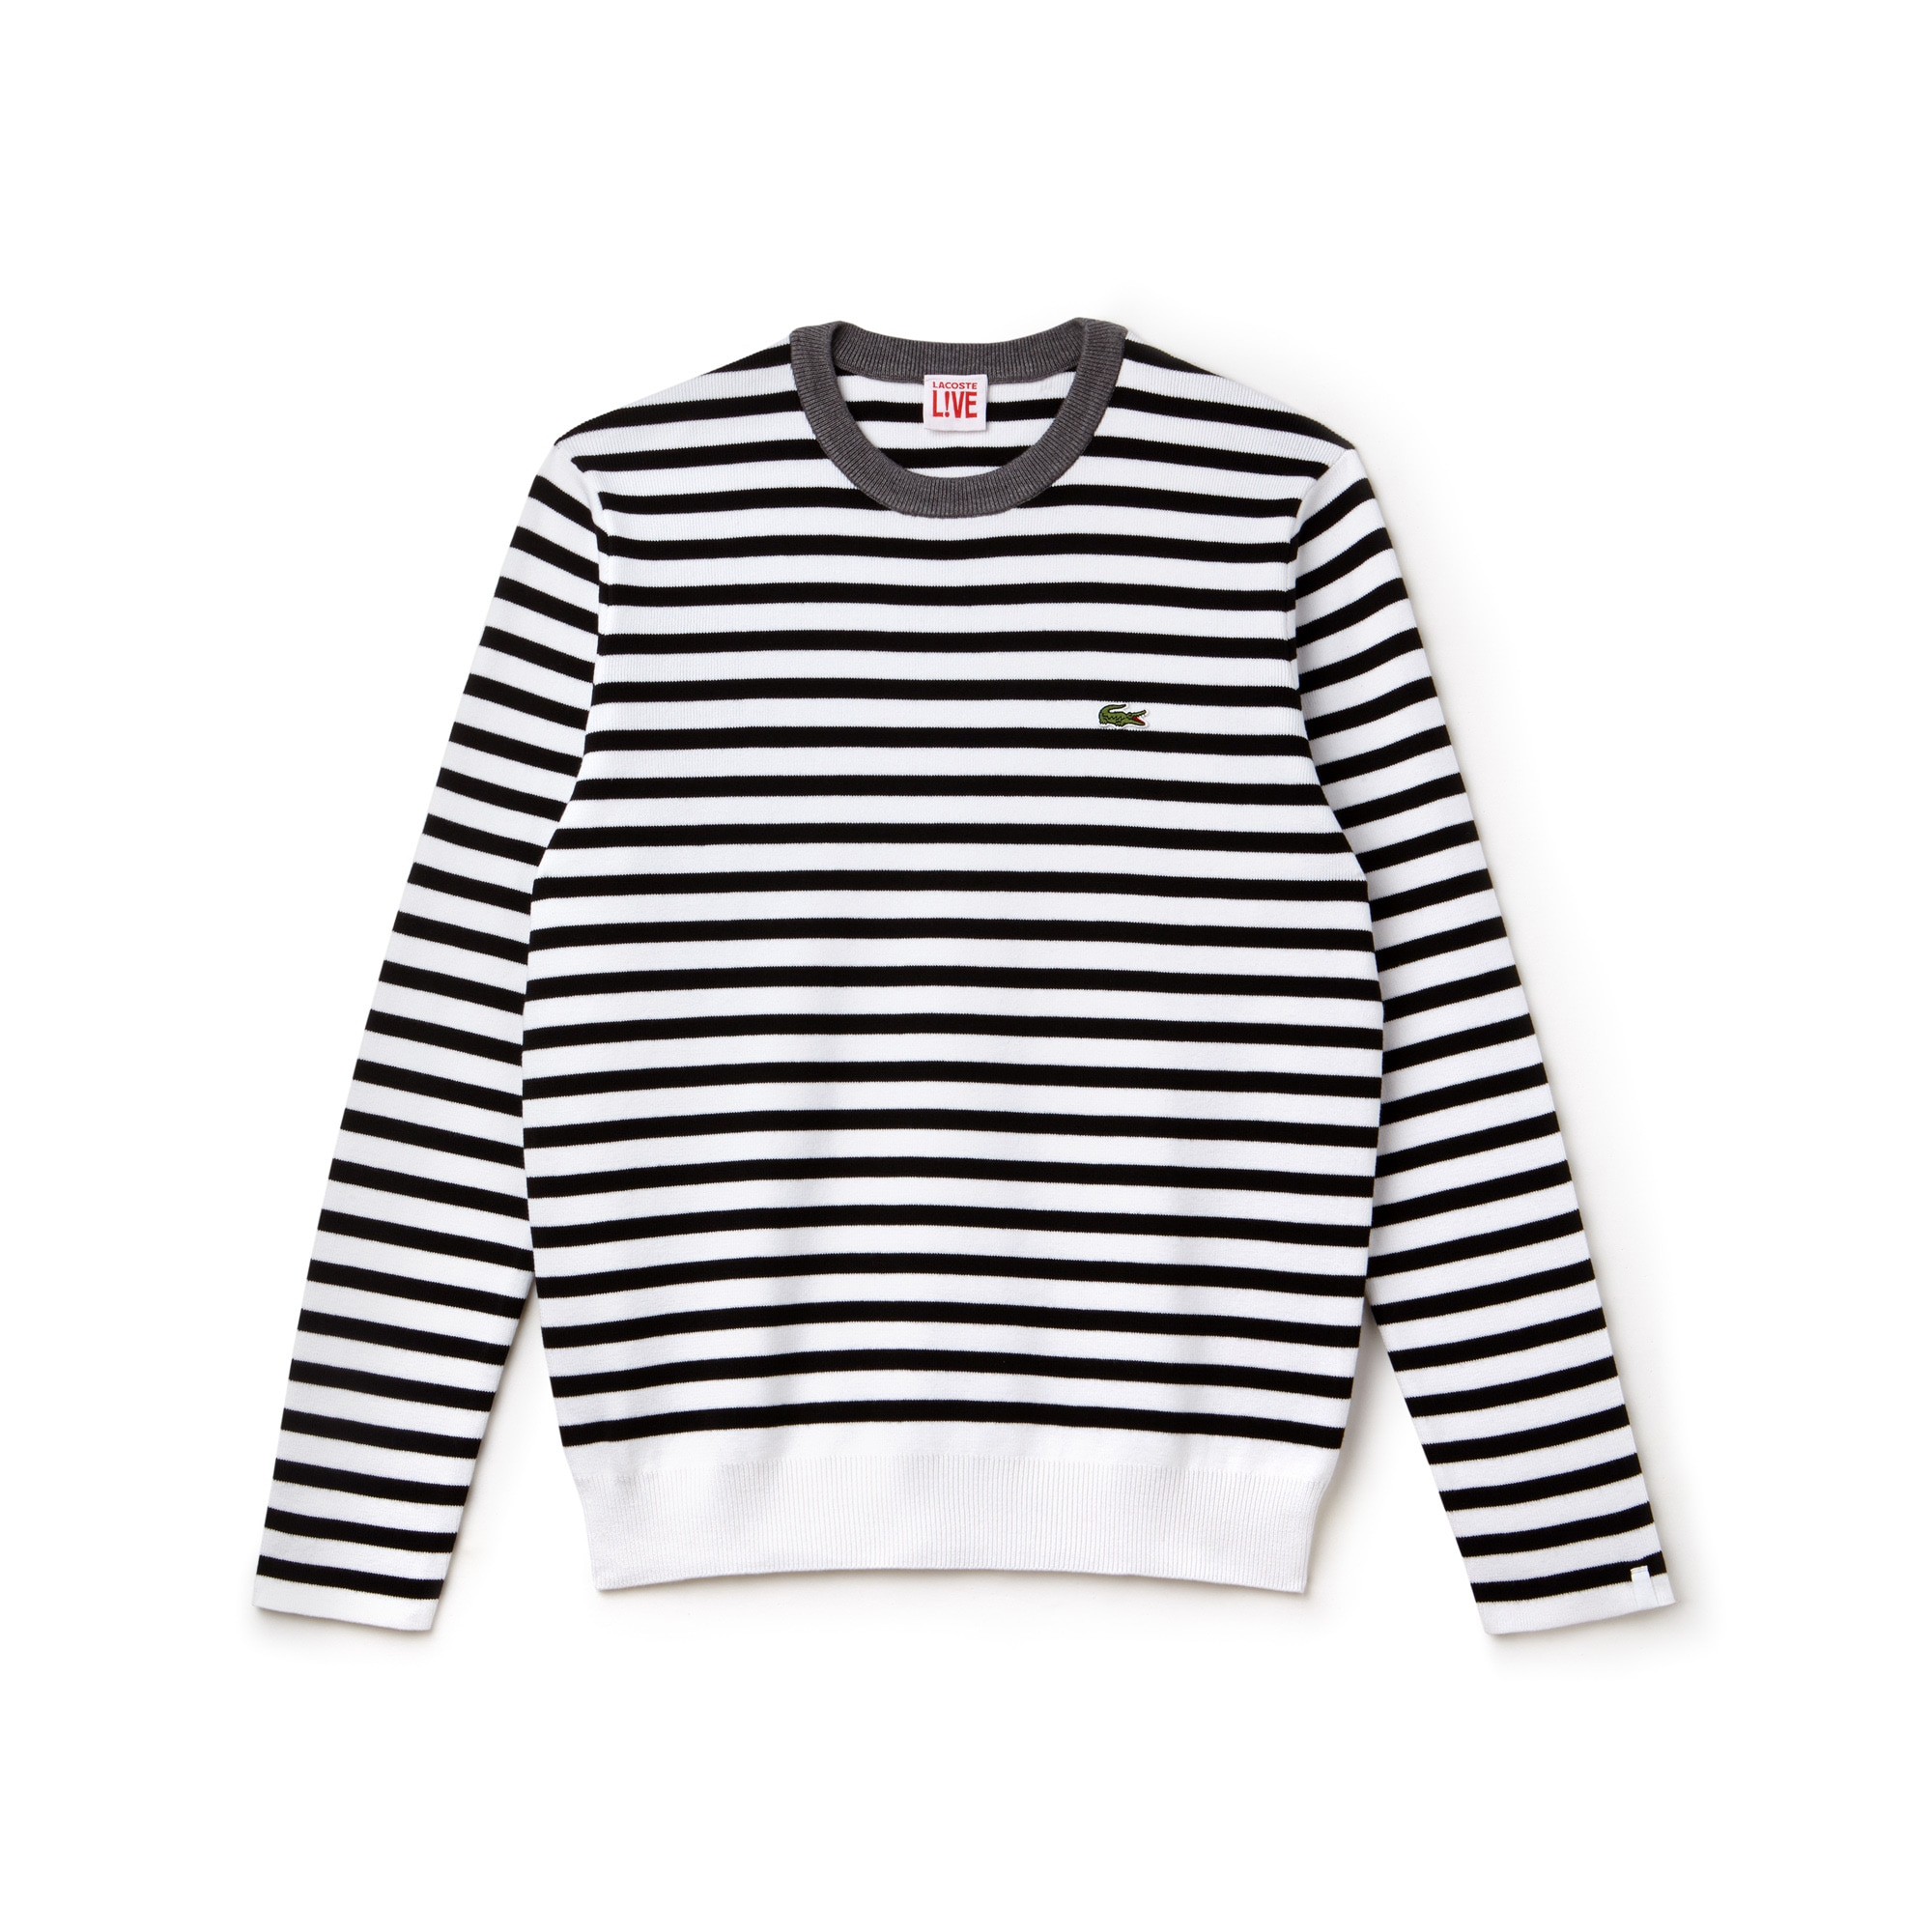 Men's Lacoste LIVE Crew Neck Striped Cotton Jersey Sweater